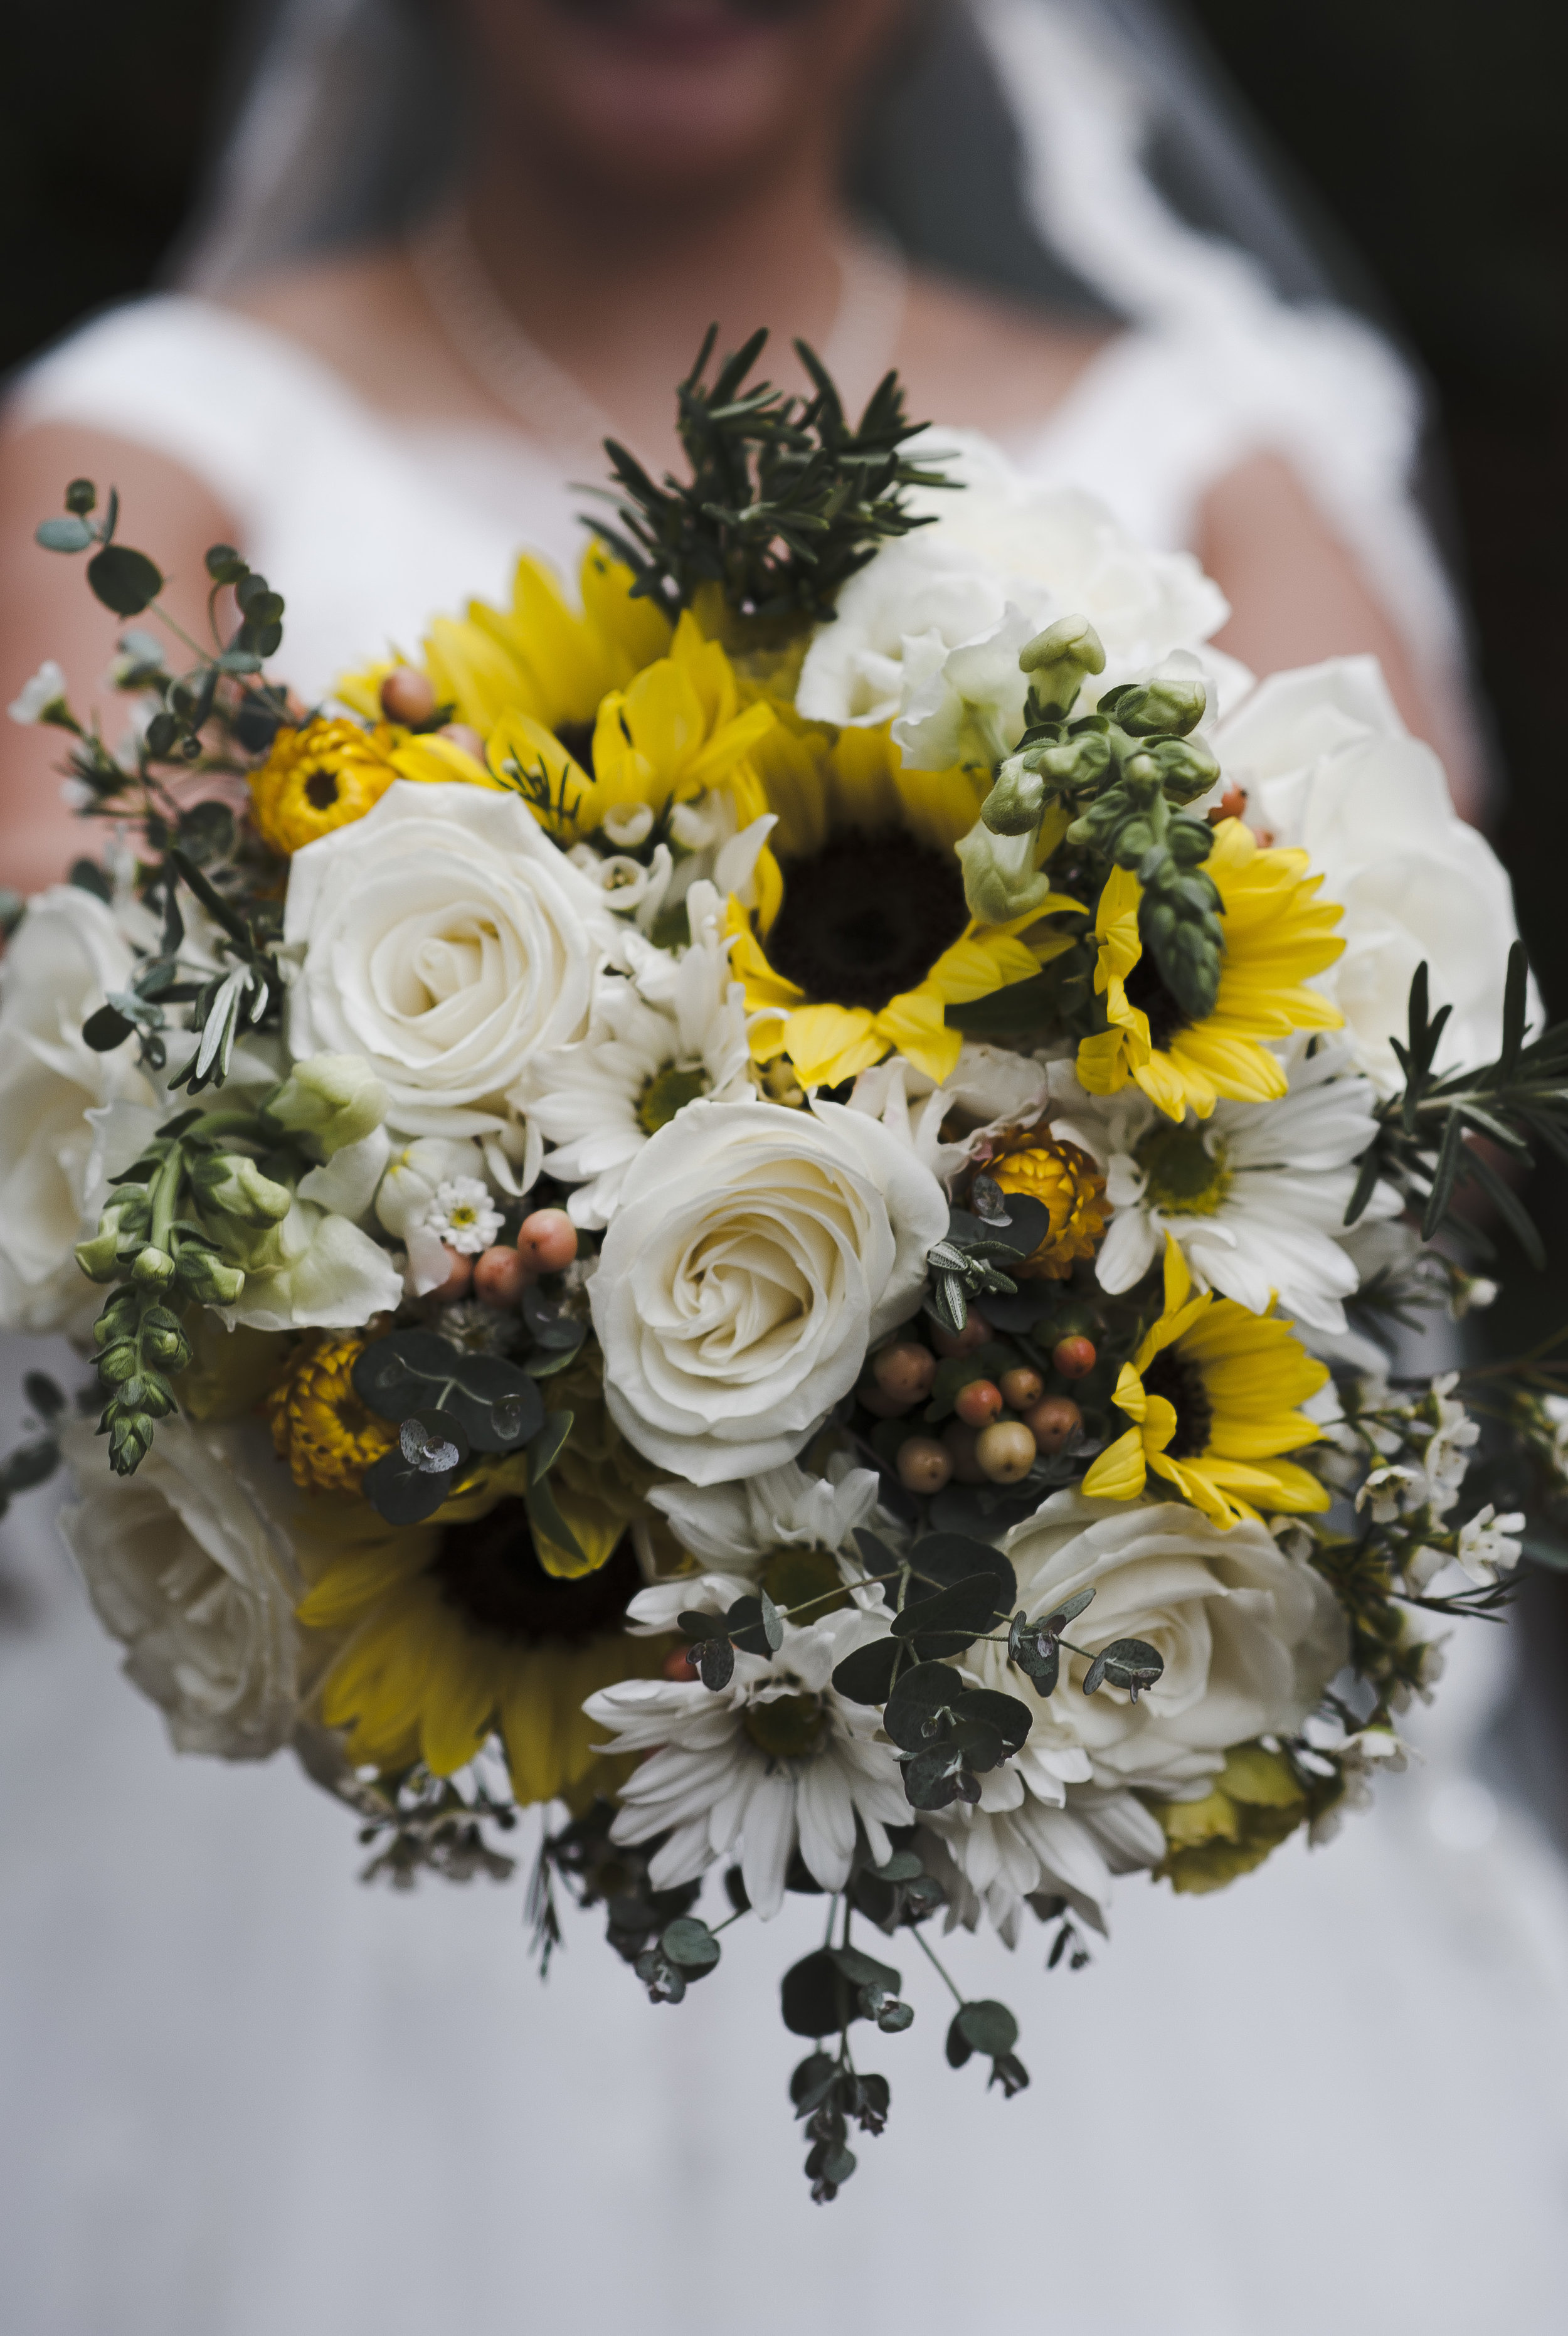 Sunflowers, snapdragons, the whitest roses, waxflower, and eucalyptus and rosemary to tie it altogether